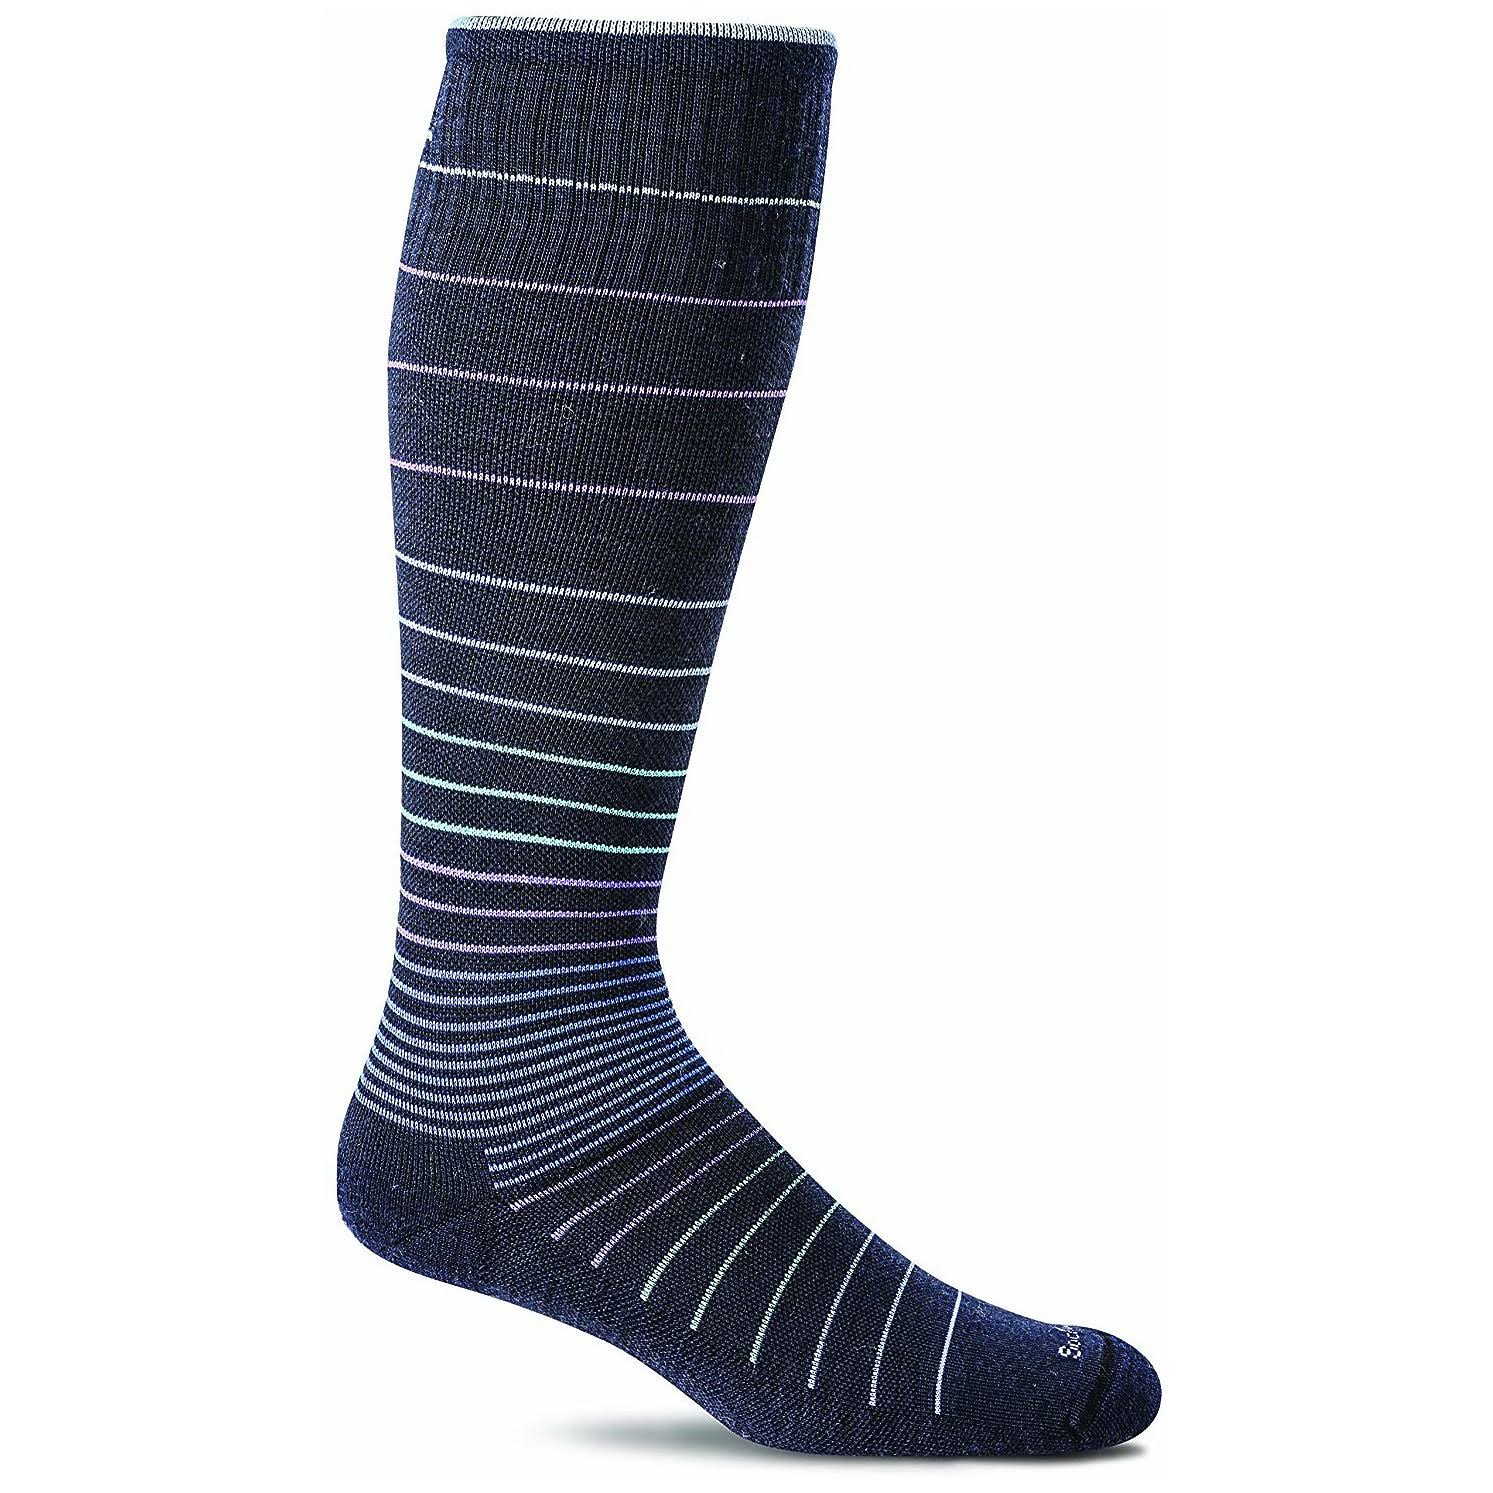 Sockwell Women's Circulator Compression Sock - Navy, Small-Medium